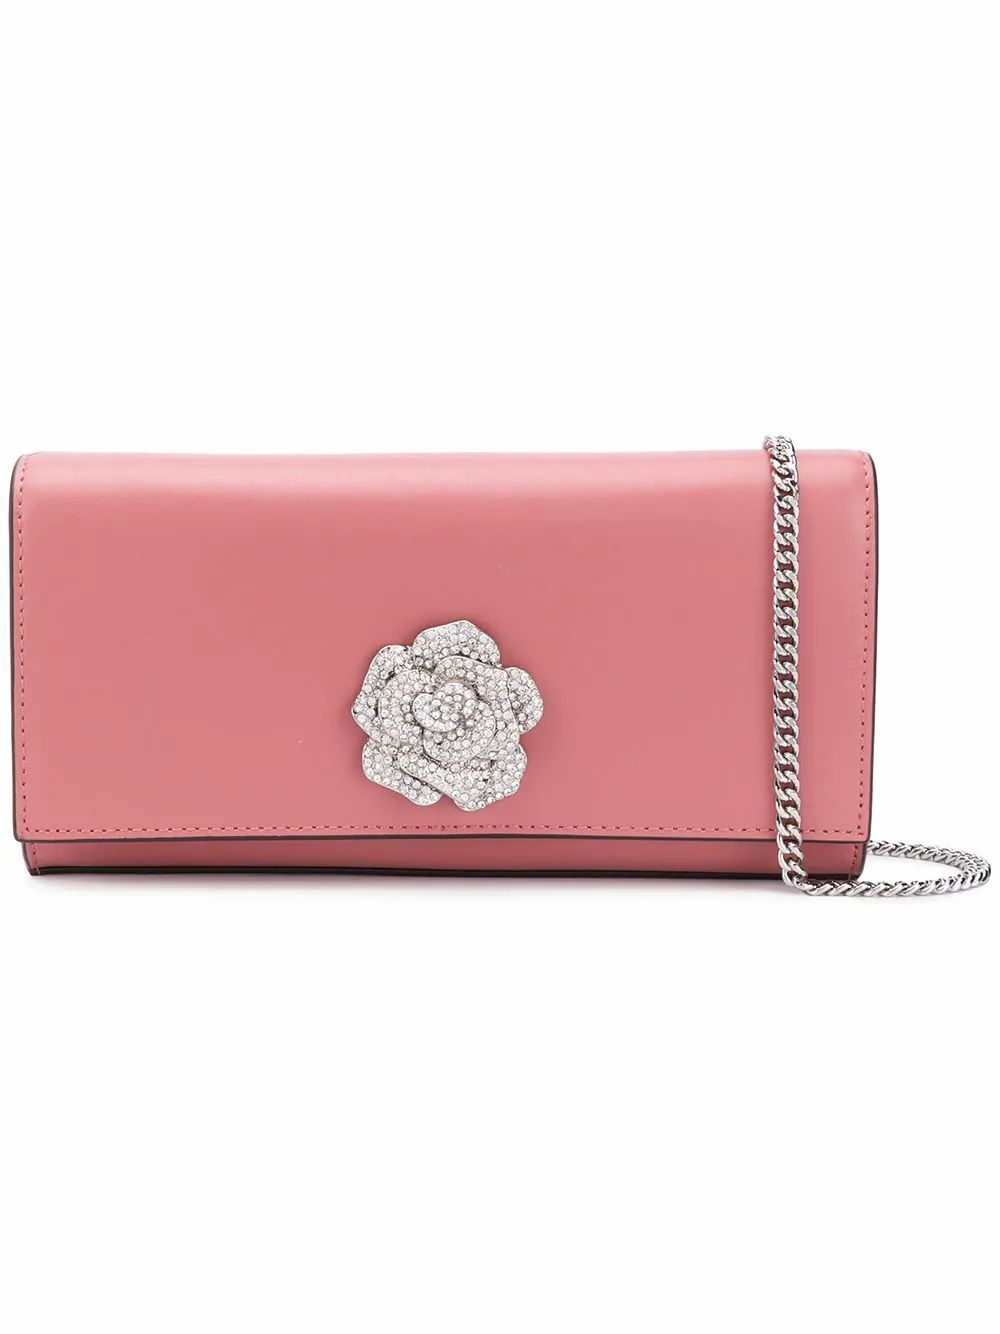 MICHAEL KORS WOMEN'S 30H8SI0C70PNK PINK LEATHER POUCH